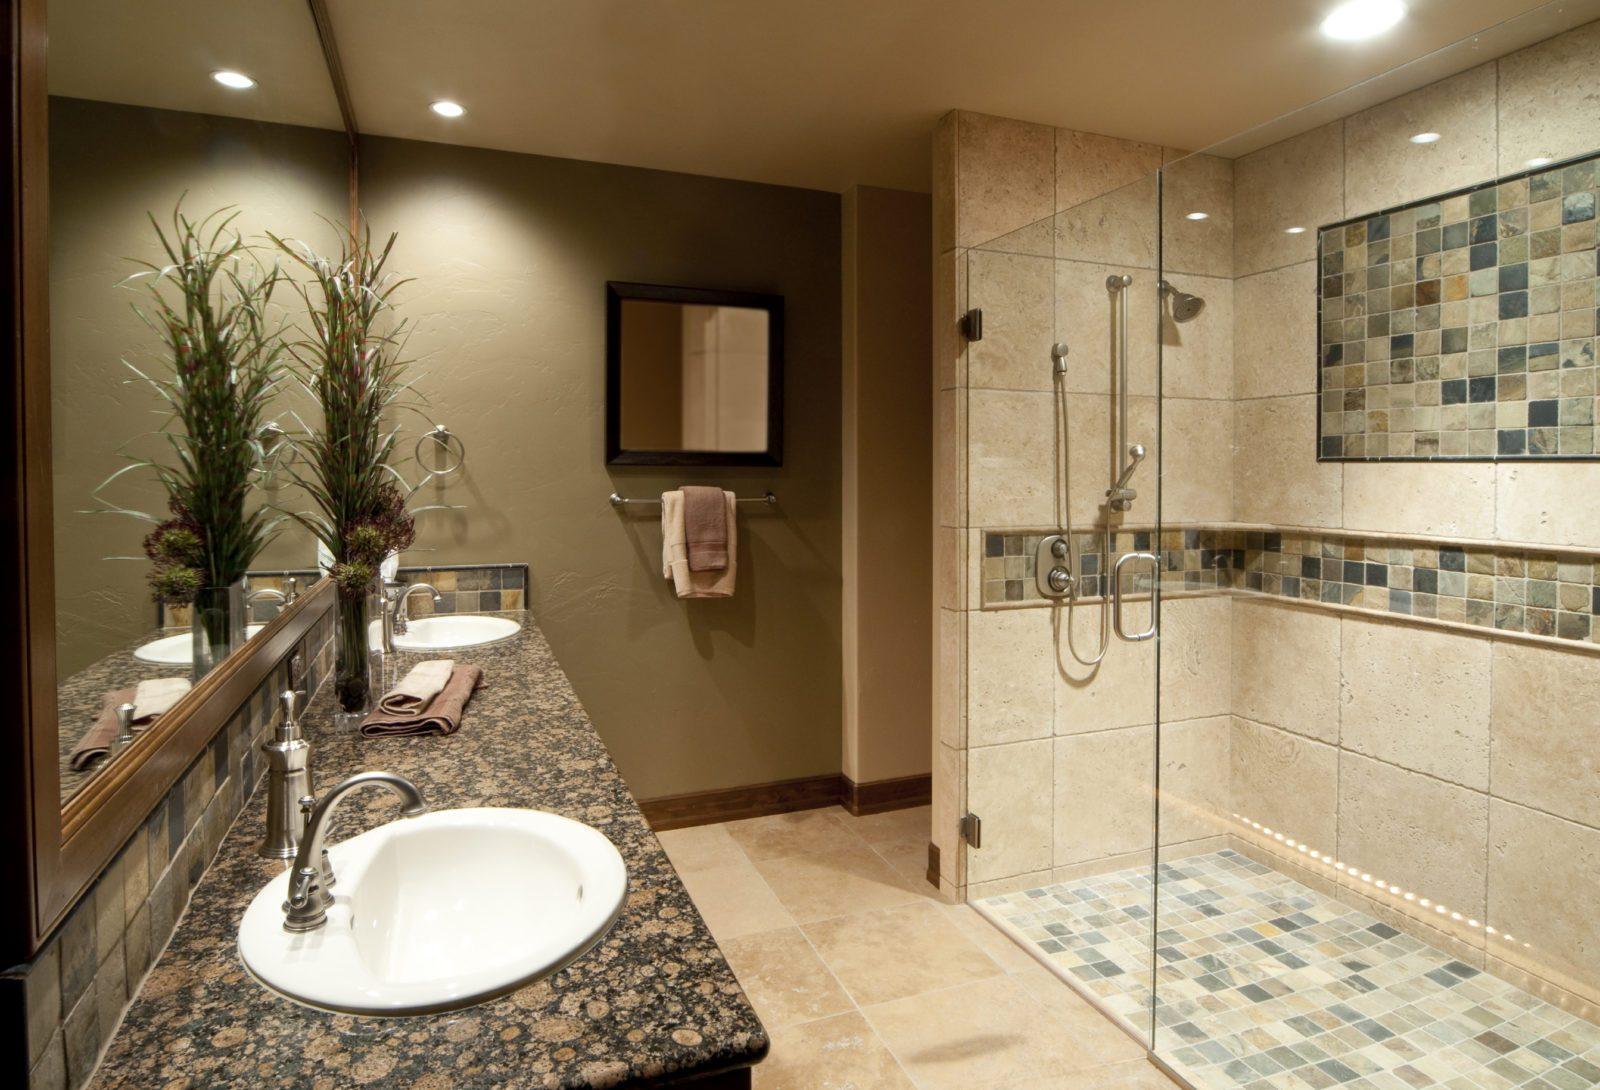 makeover design house remodel ideas modern in stylish lowes bathroom